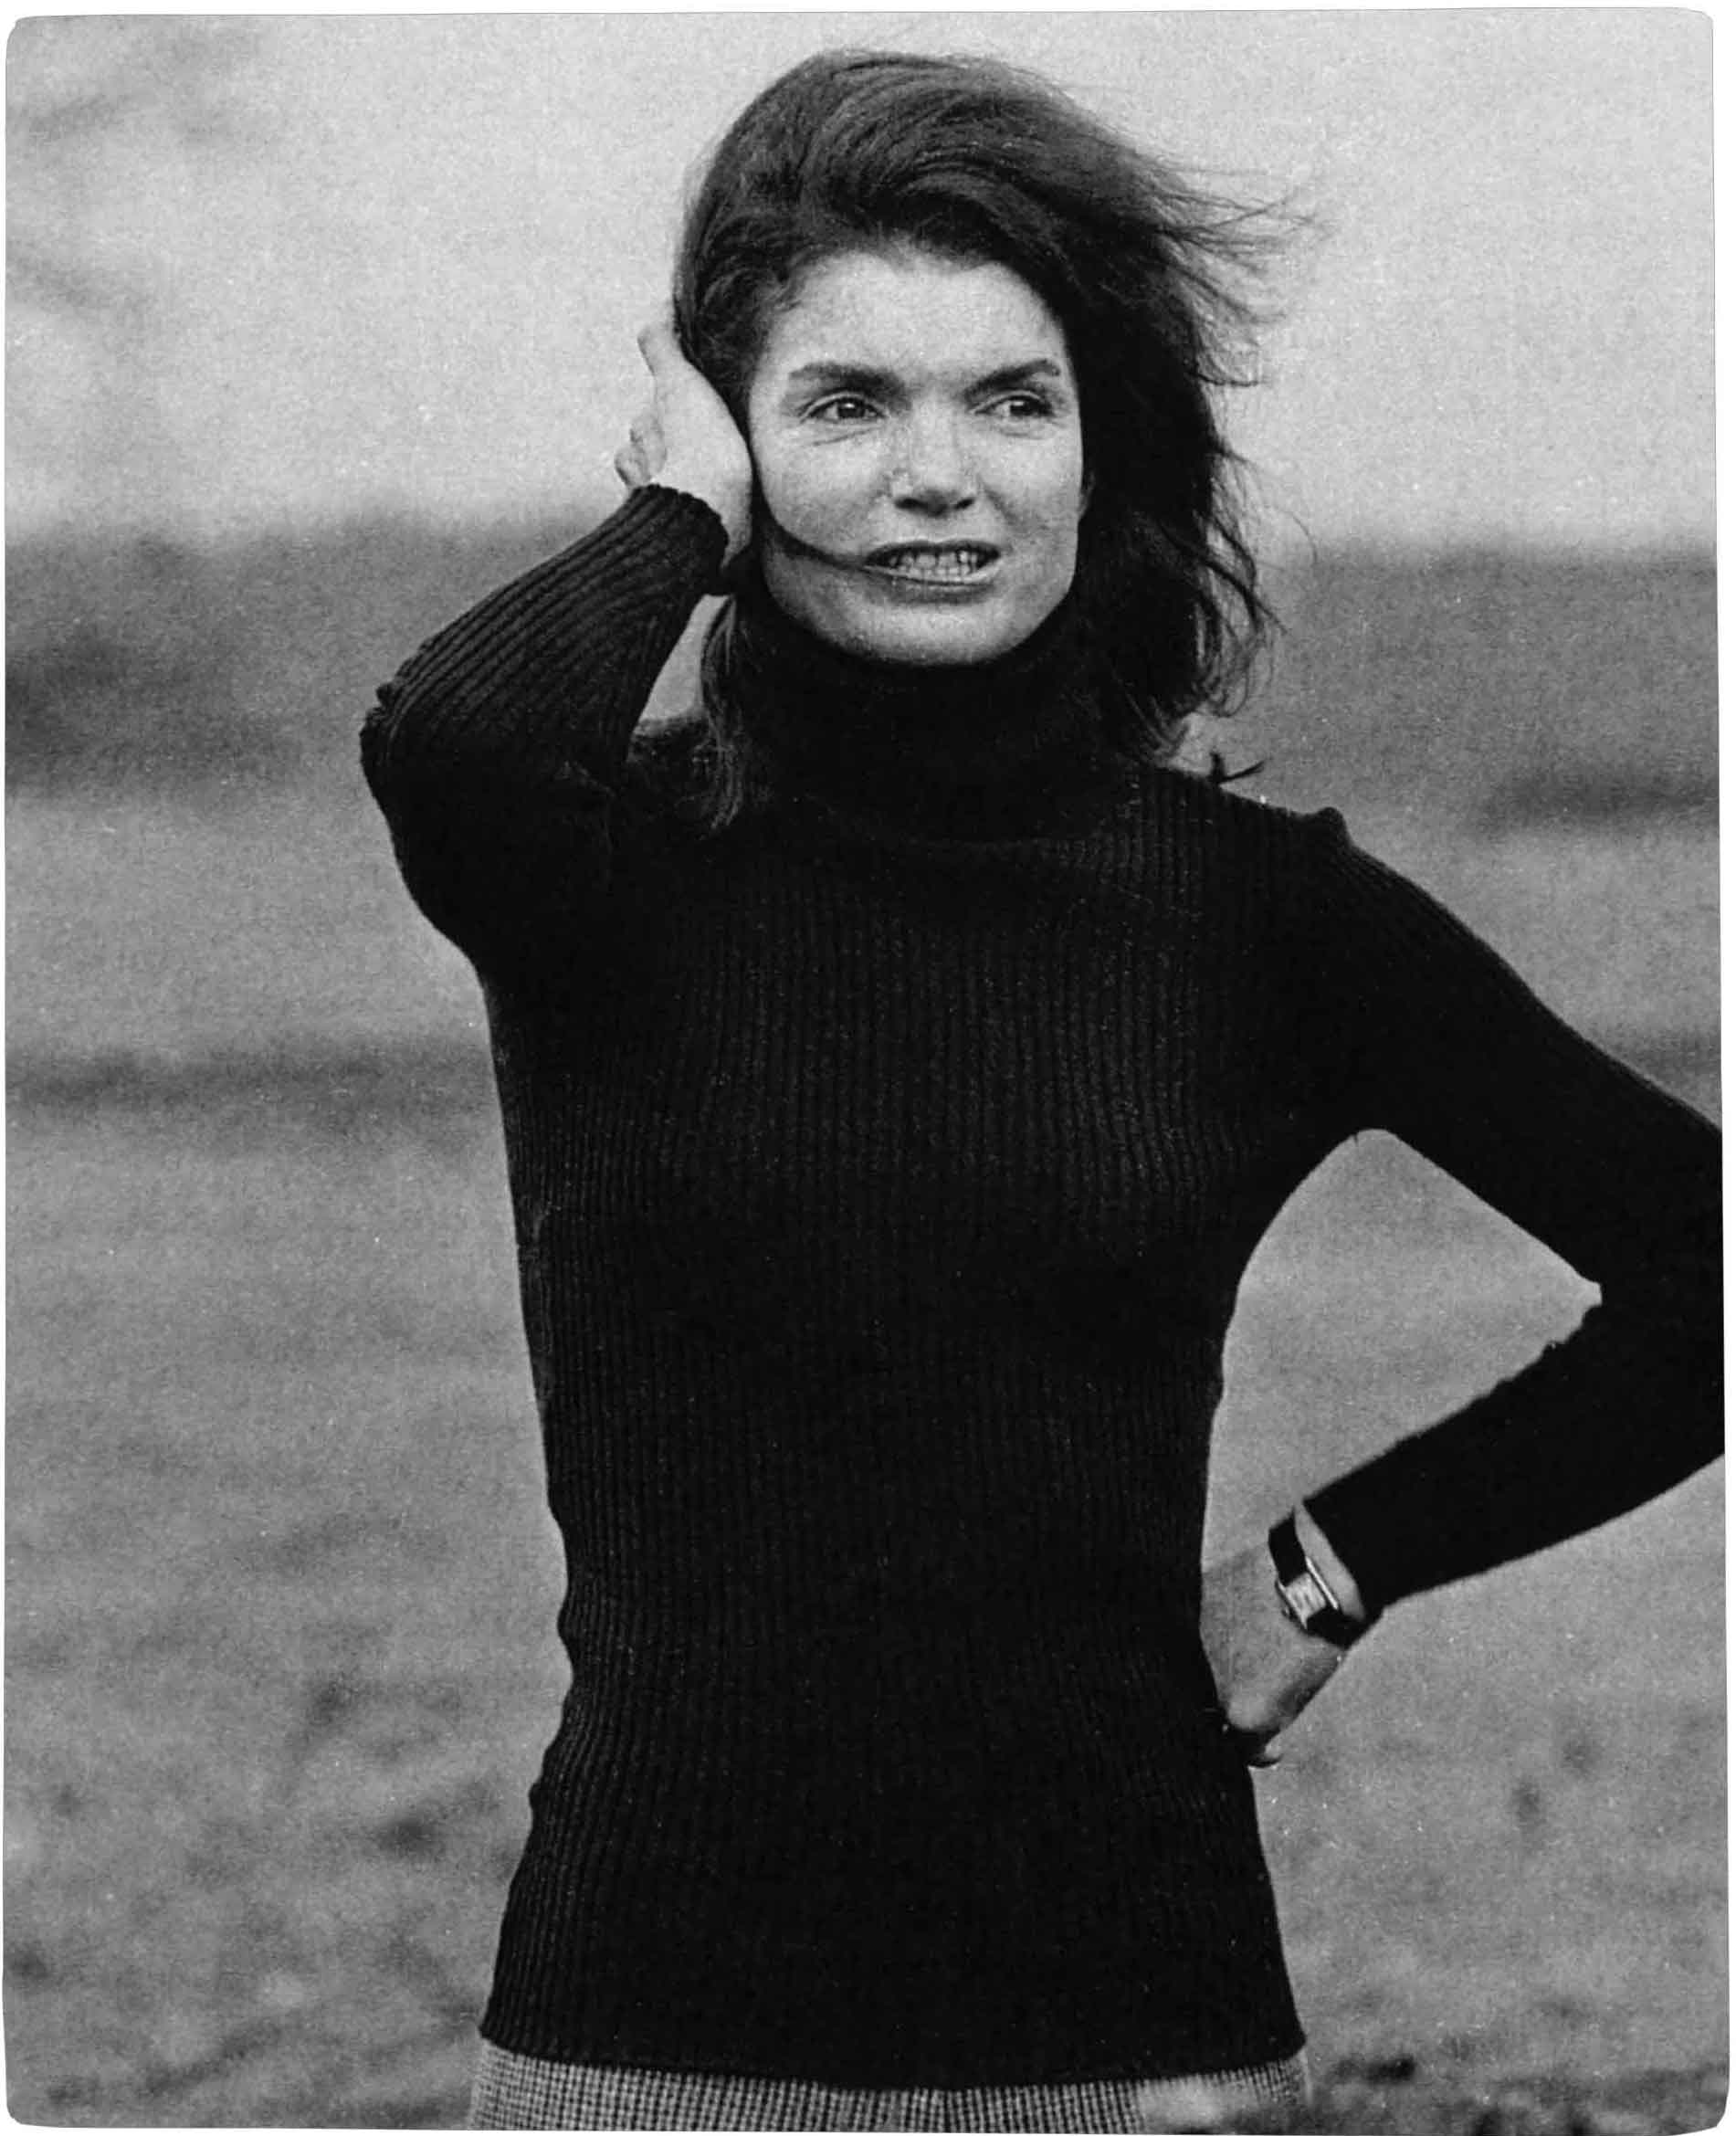 The Cartier Tank, seen here on former first lady Jackie Kennedy's wrist, is one of the most important artifacts related to the Kennedy presidency to have emerged in recent times.